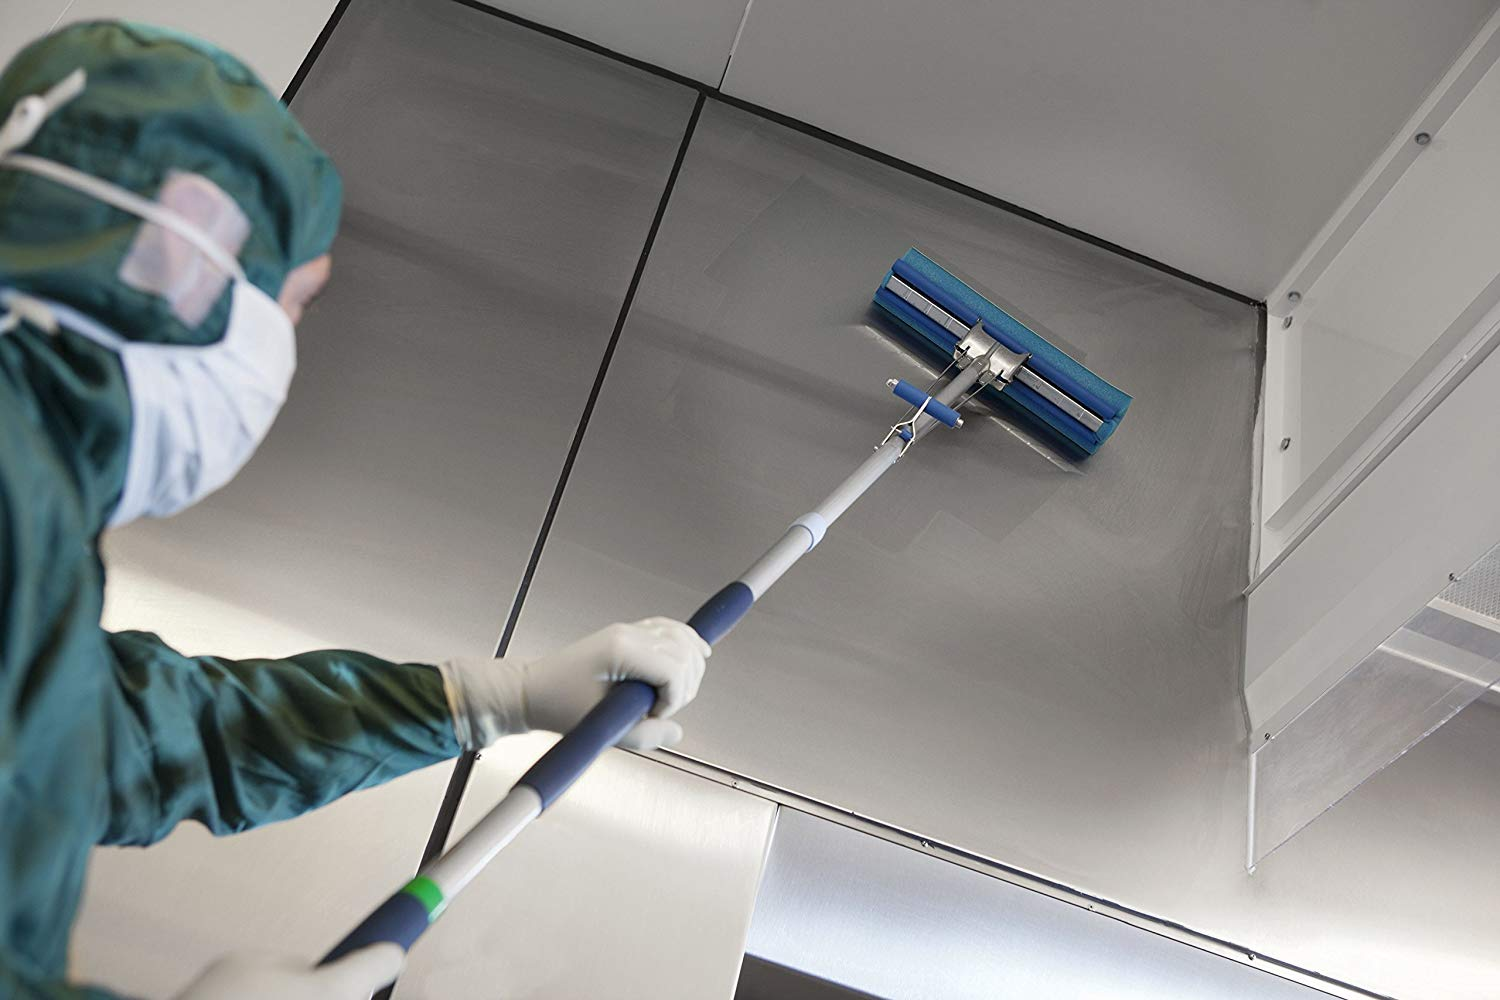 ISO 7 Cleanroom Panel Cleaning & Maintenance